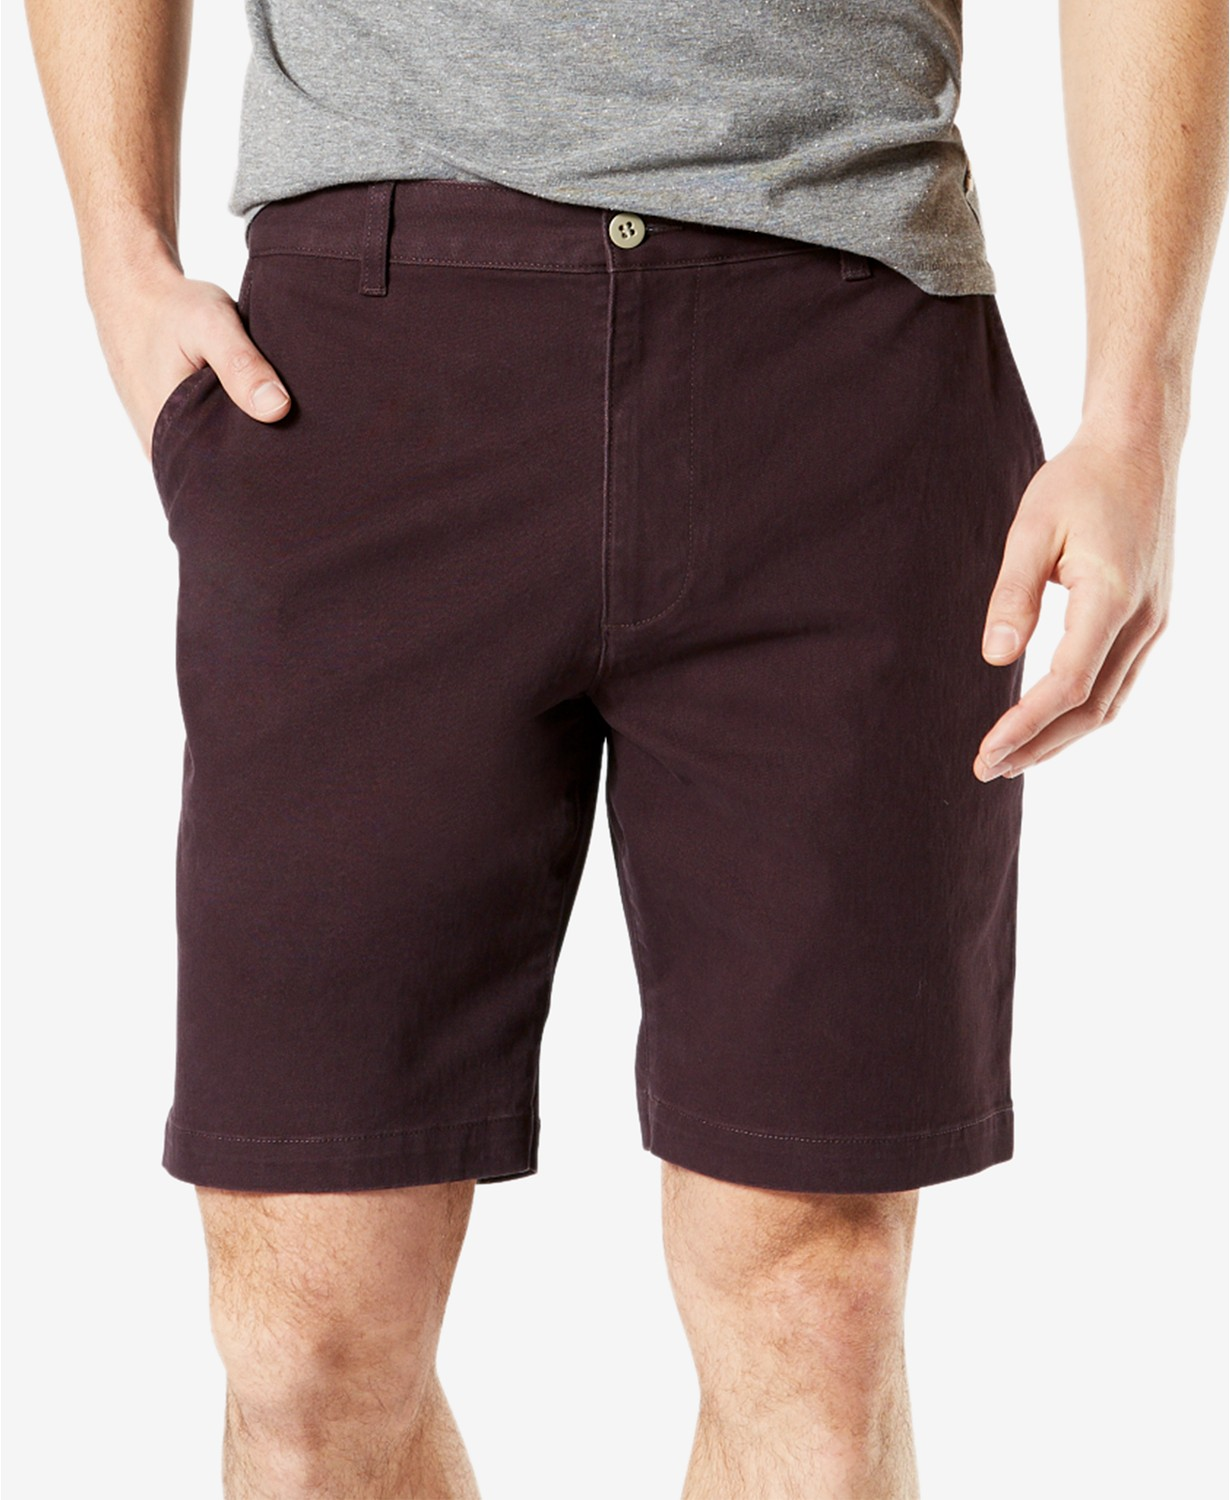 Dockers Classic Fit 9.5 Perfect Stretch Men's Shorts